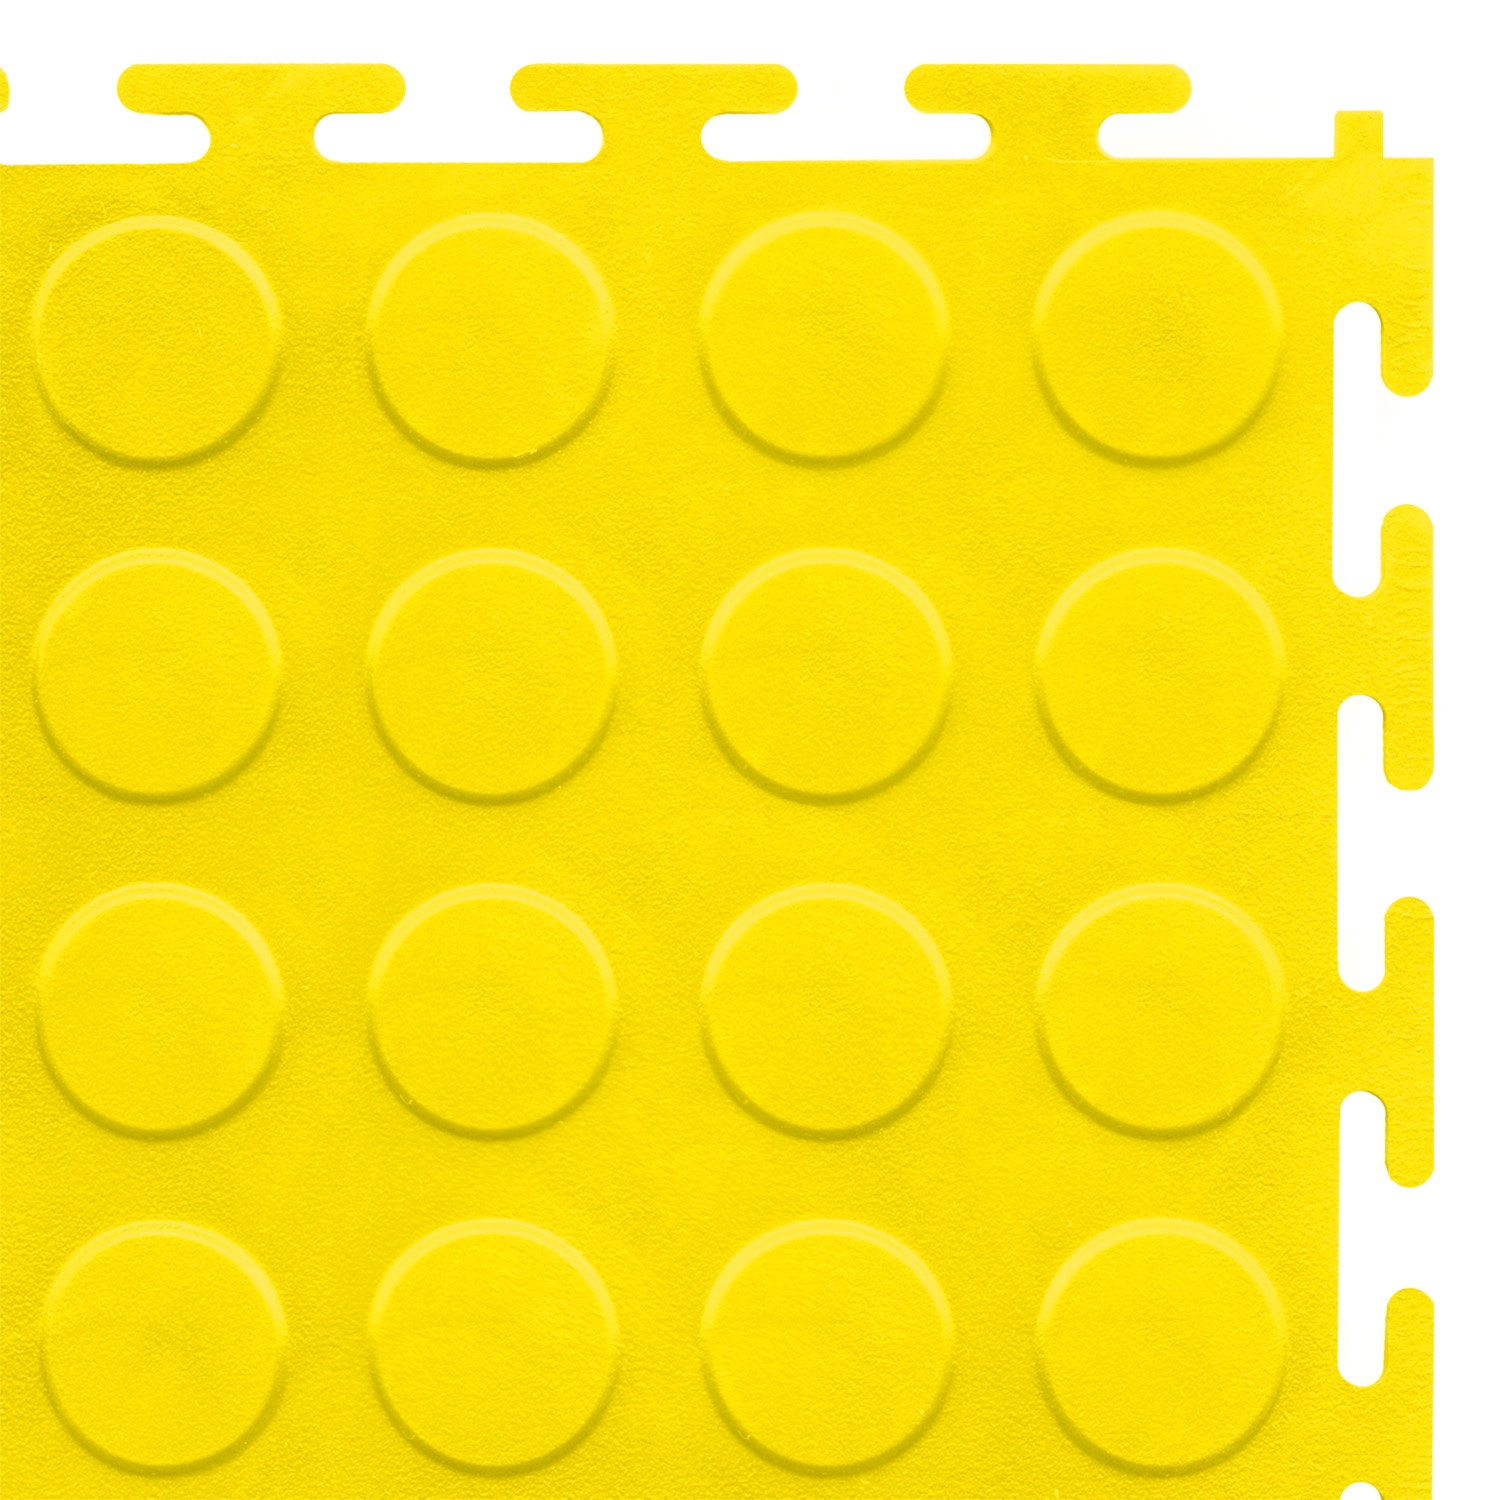 Standard floor tile (yellow/studded)